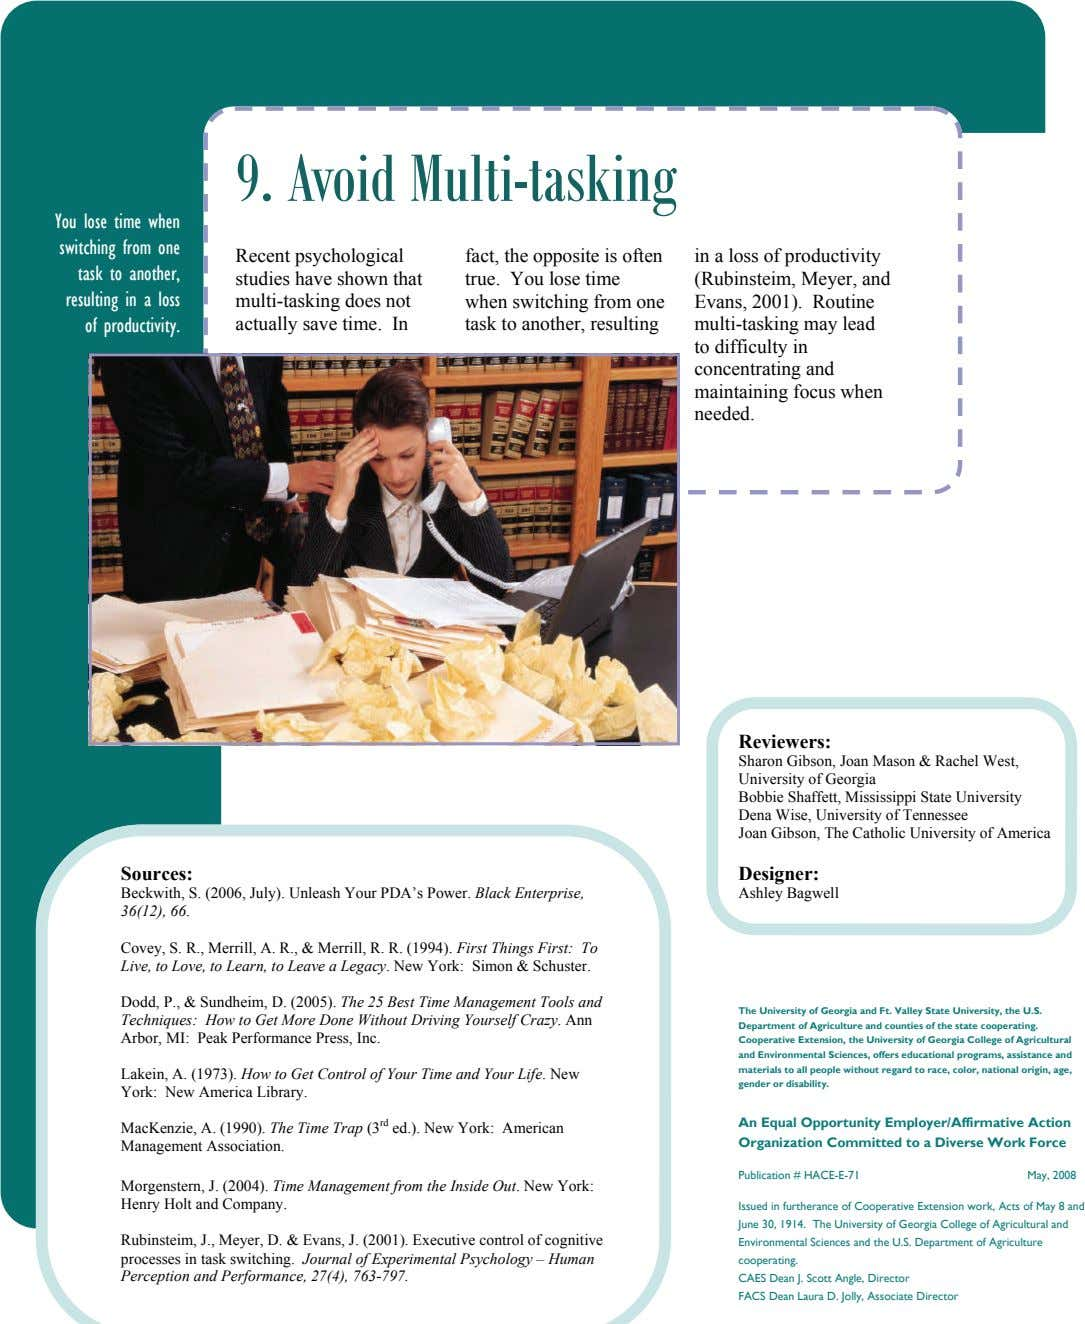 9. Avoid Multi-tasking You lose time when switching from one task to another, resulting in a